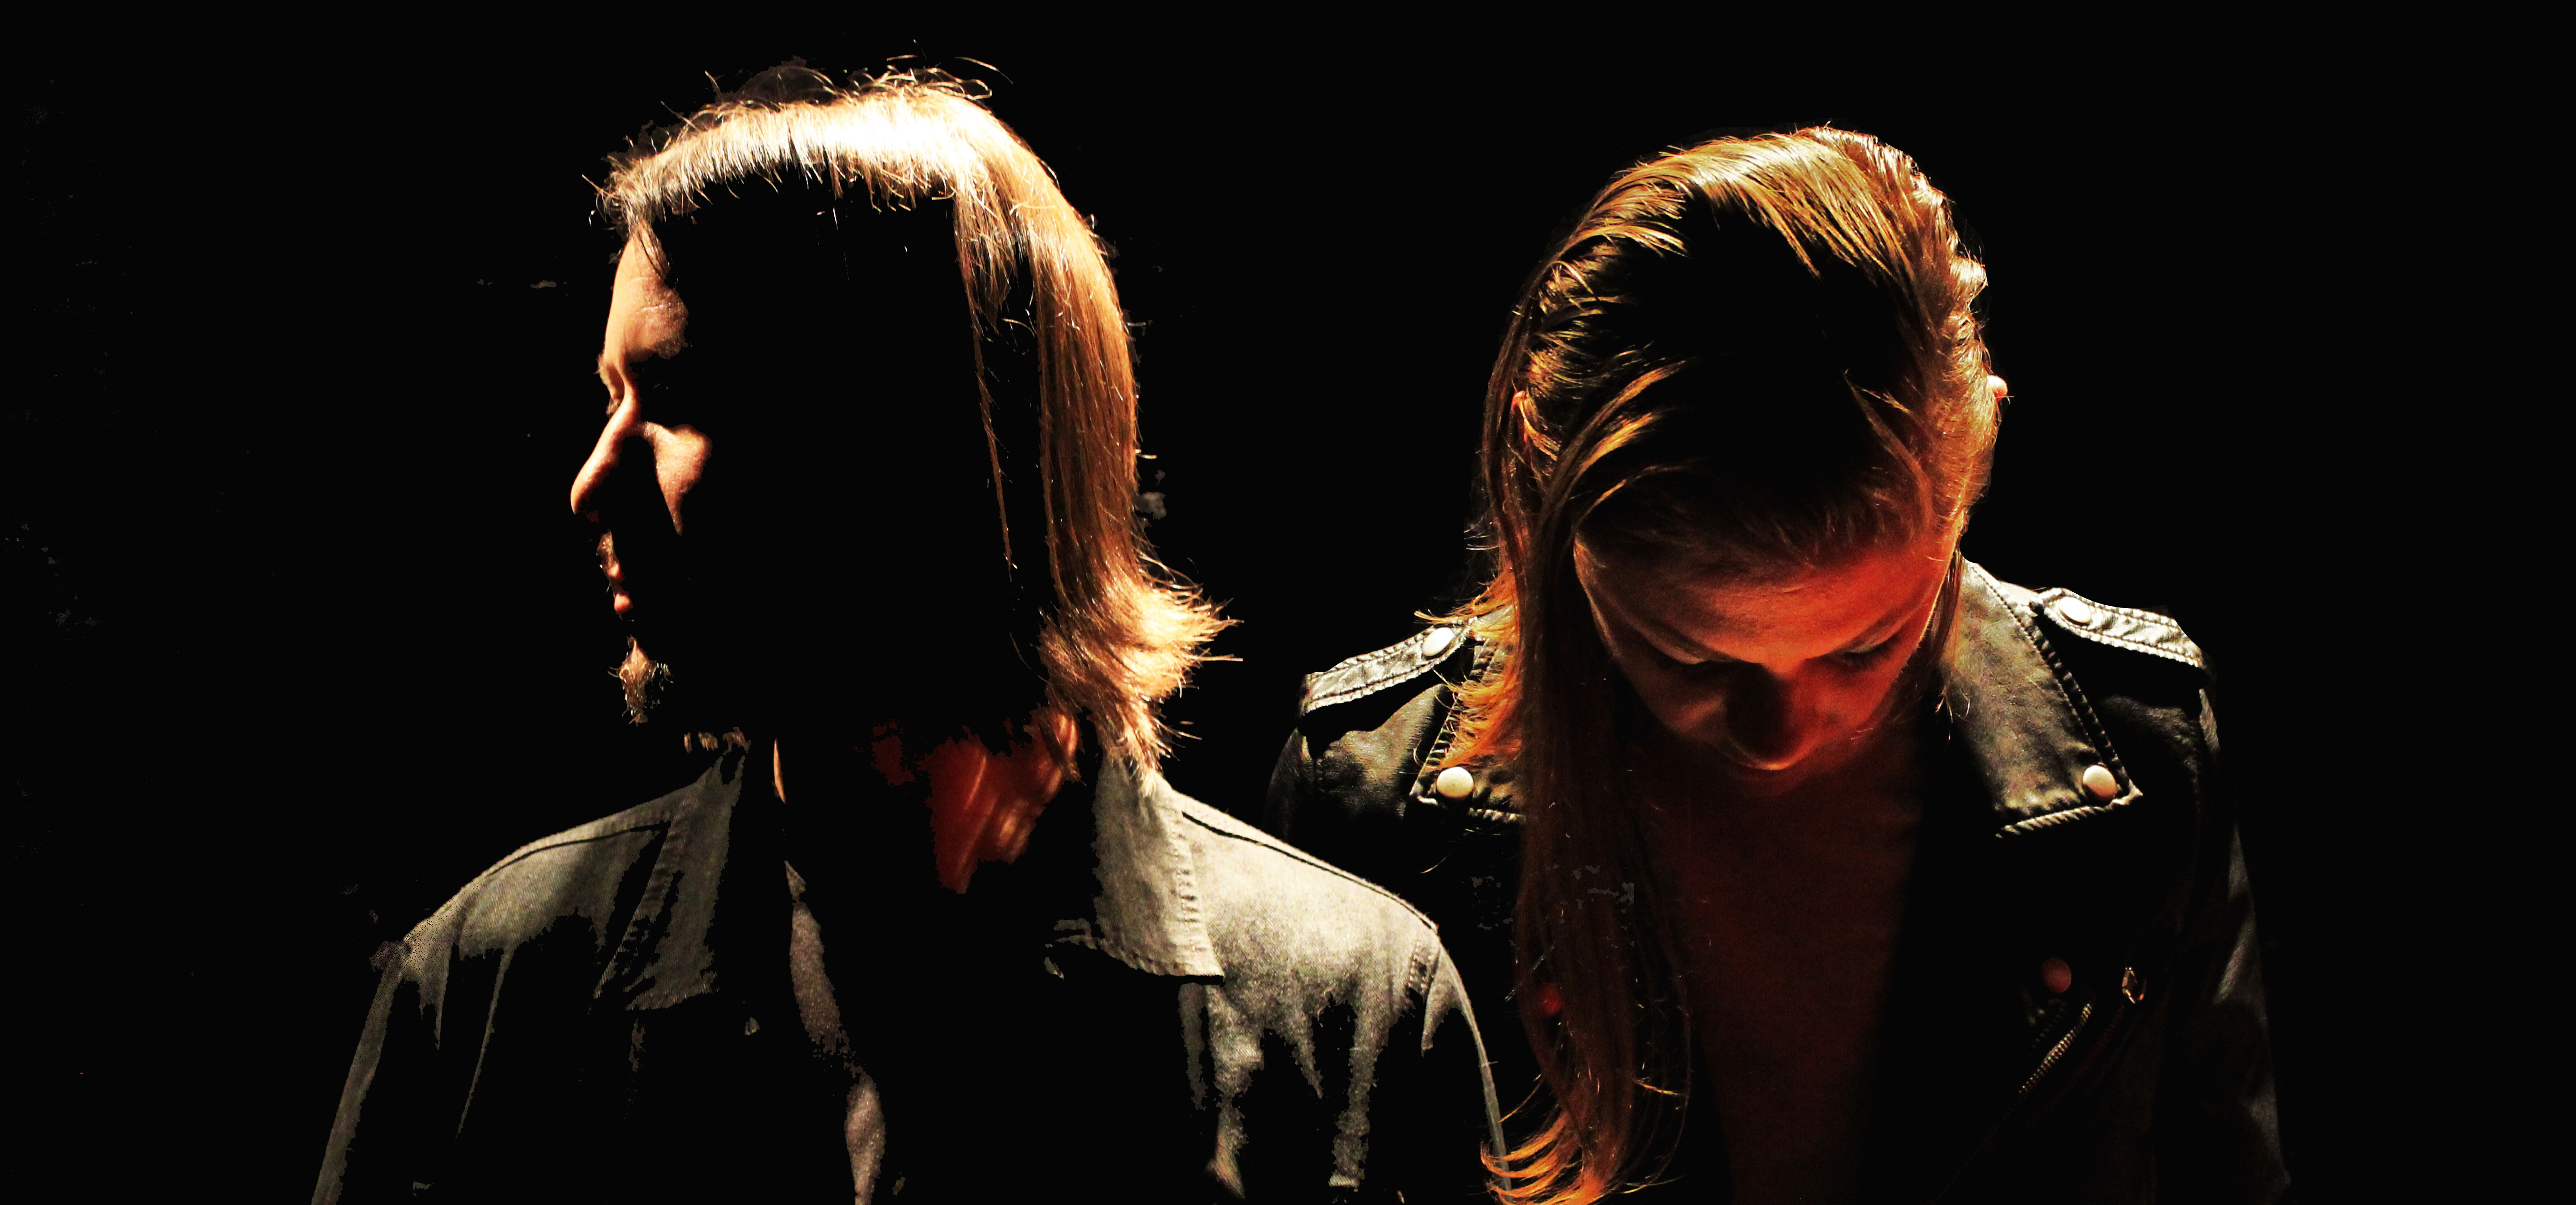 MOON is Chelsea Davis (vocals/bass) and Dan Silver (guitar/synth).